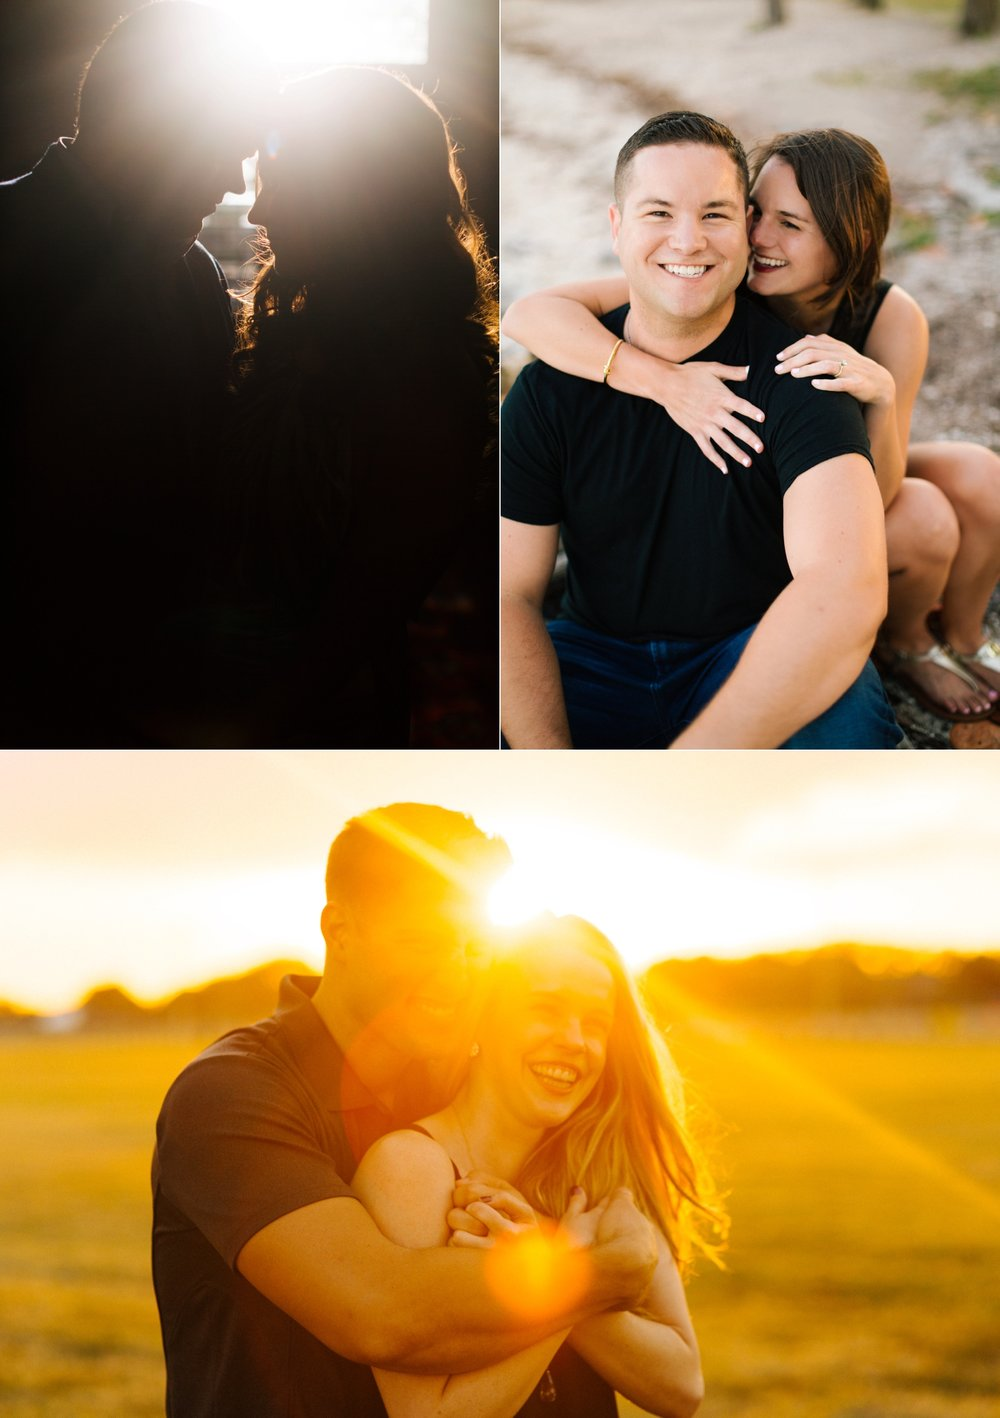 Jake & Katie Photography Best of Couples 2016-010.jpg